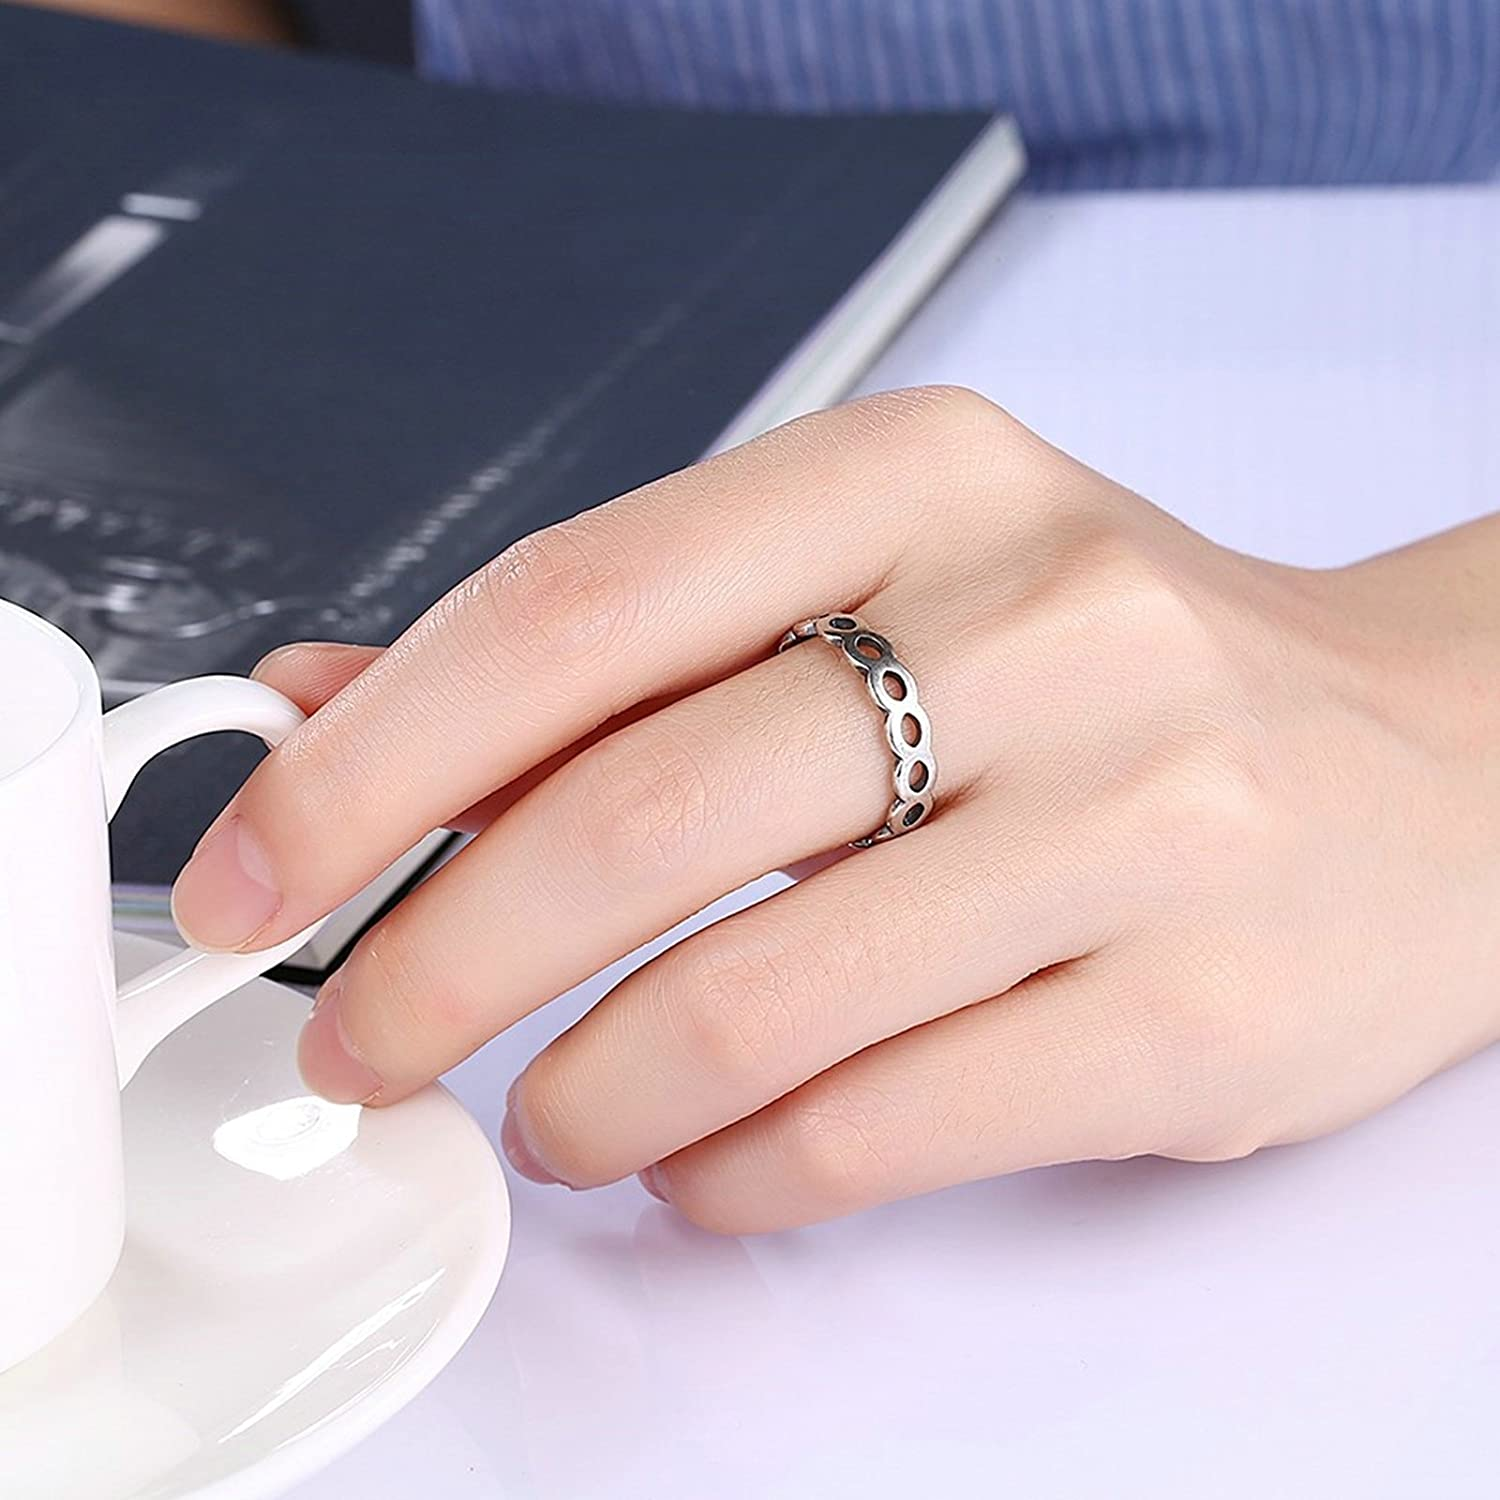 Amazon.com: Adisaer Women Rings Silver Plated 5MM Knuckle Black Onyx ...